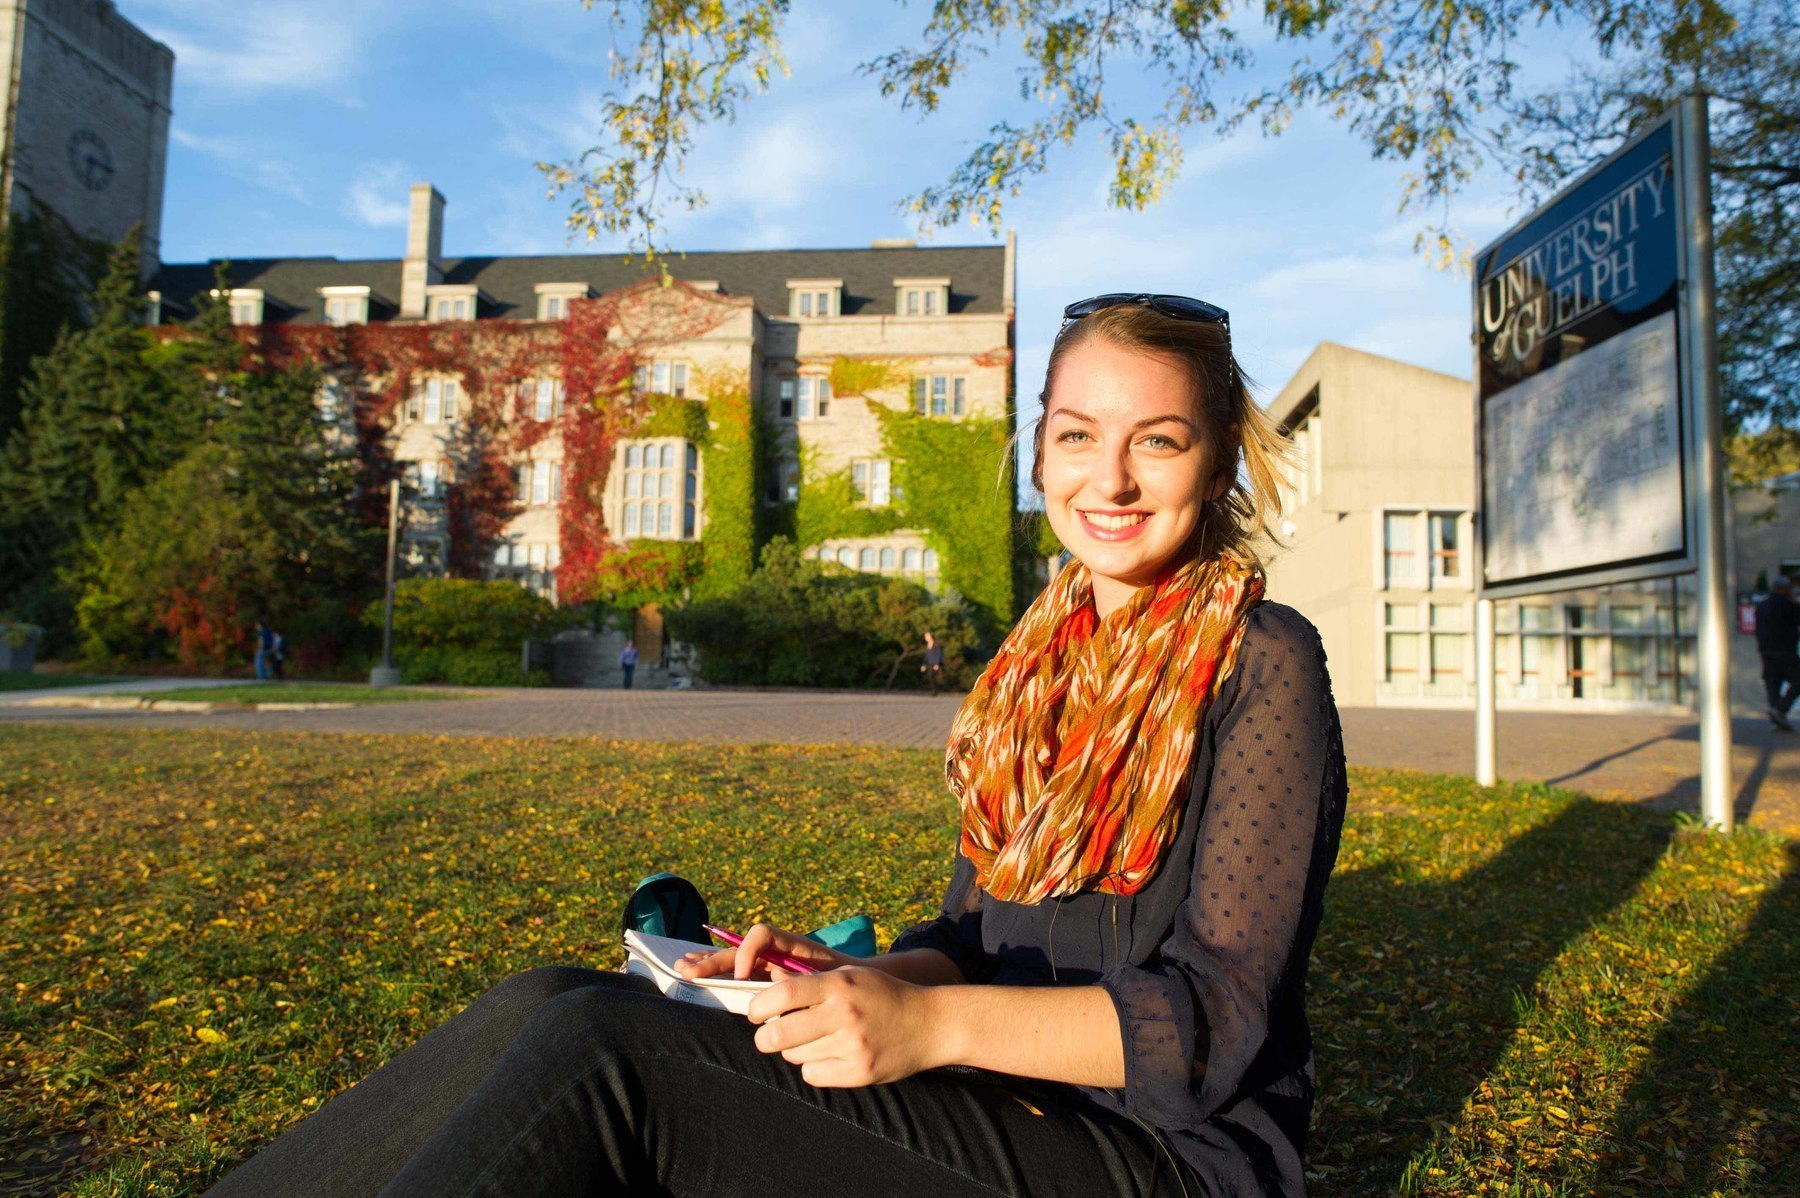 MACLEANS-GUELPH-10.12.13-GUELPH, ON: First year micro-biology student Virginia Turon studies on Johnston green at the University of Guelph, ON.